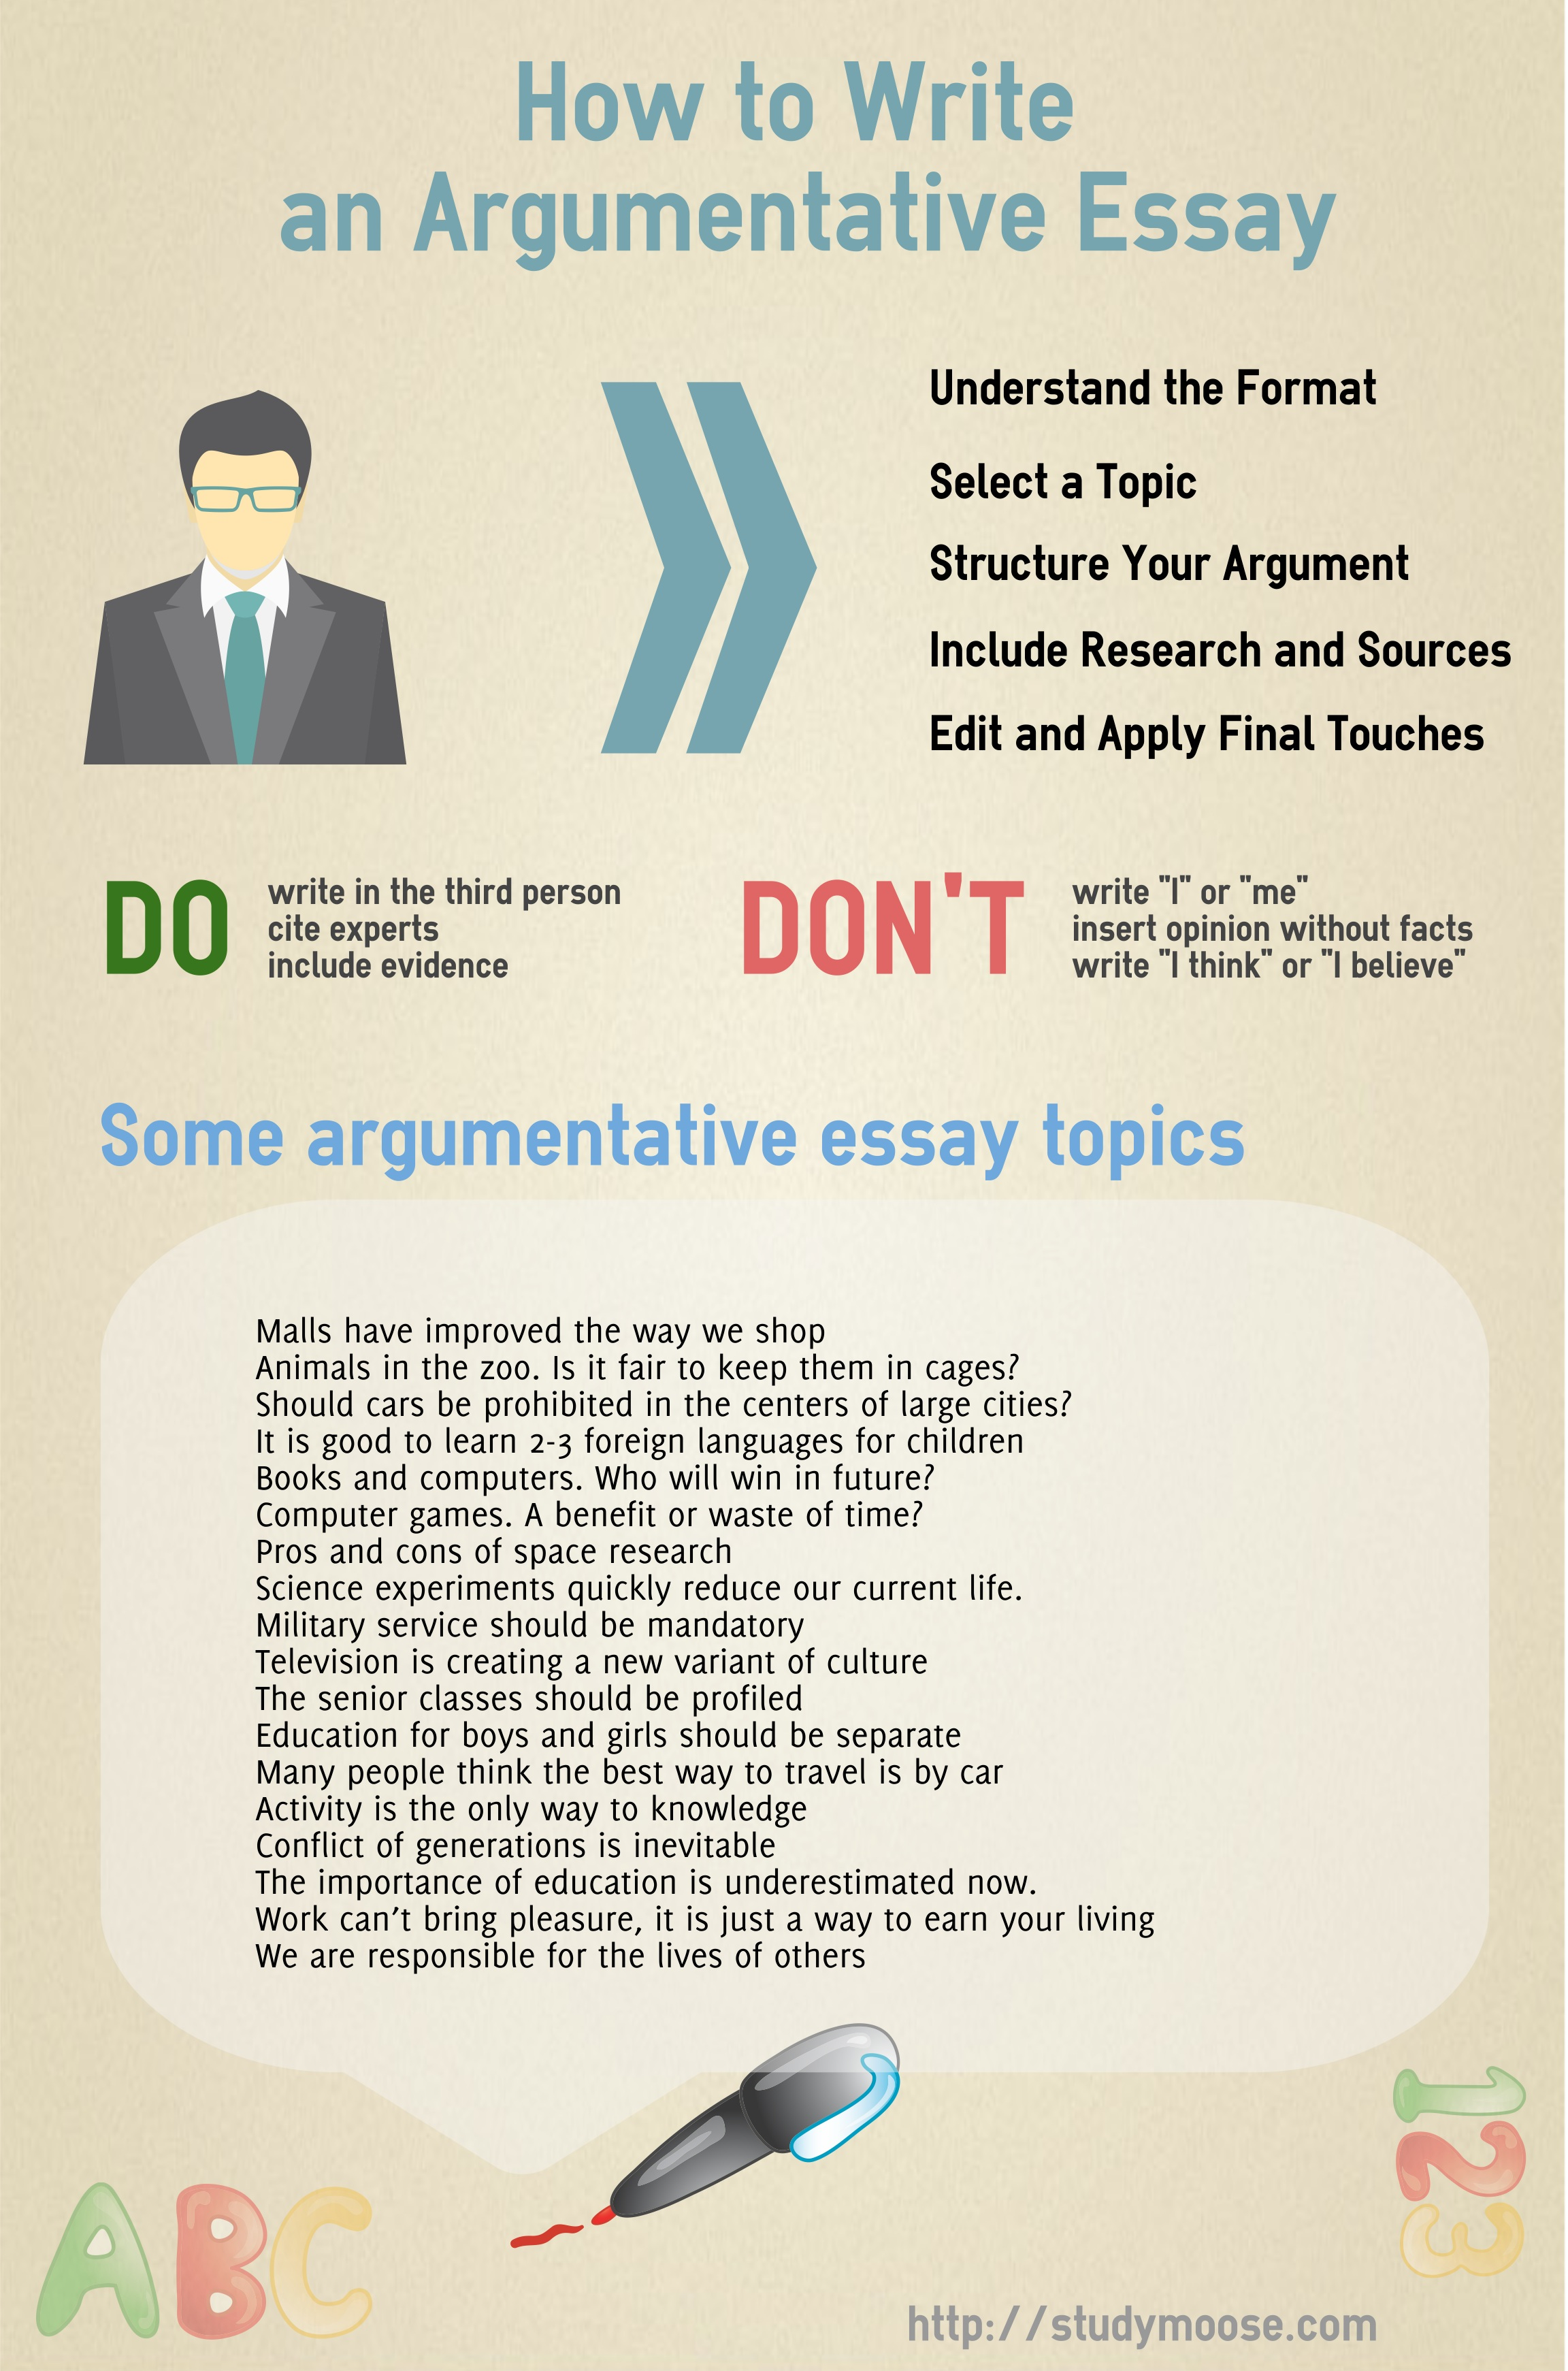 007 Essay Example How To Write An Argumentative Argument Astounding Topics Gre For High Schoolers New York Times Full